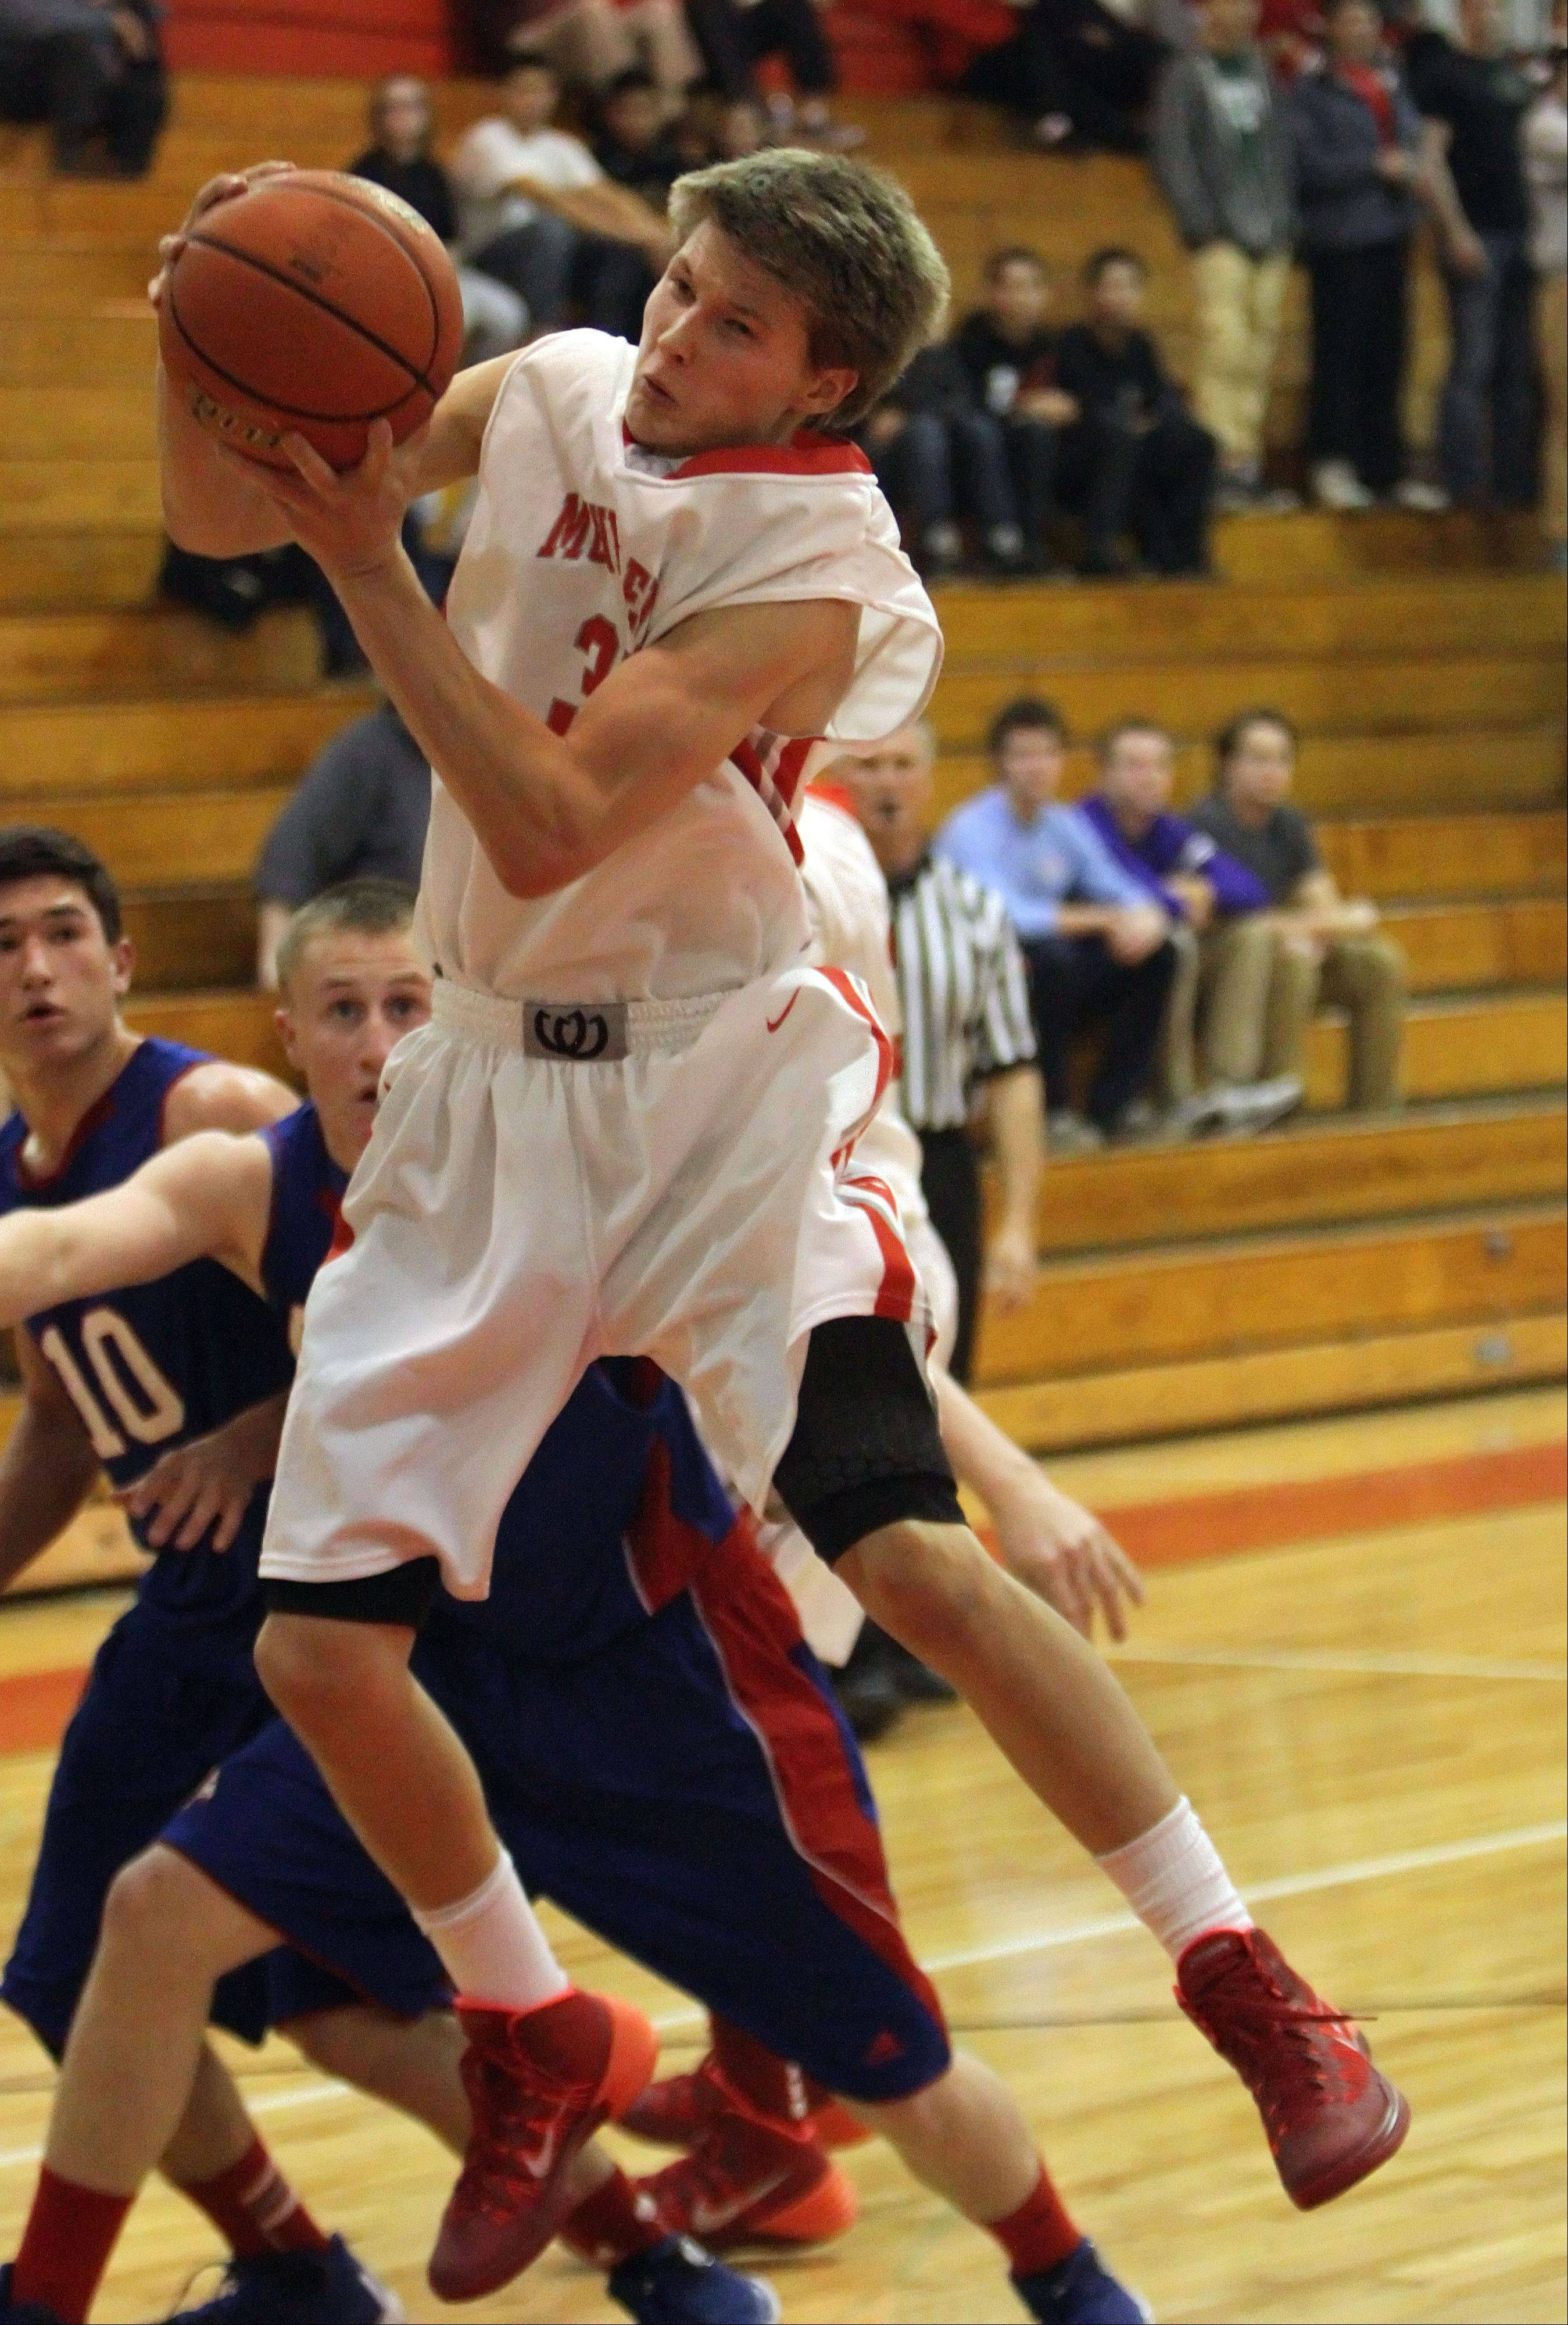 Mundelein's J.T Michalski pulls down a rebound against Lakes on Tuesday at Mundelein.